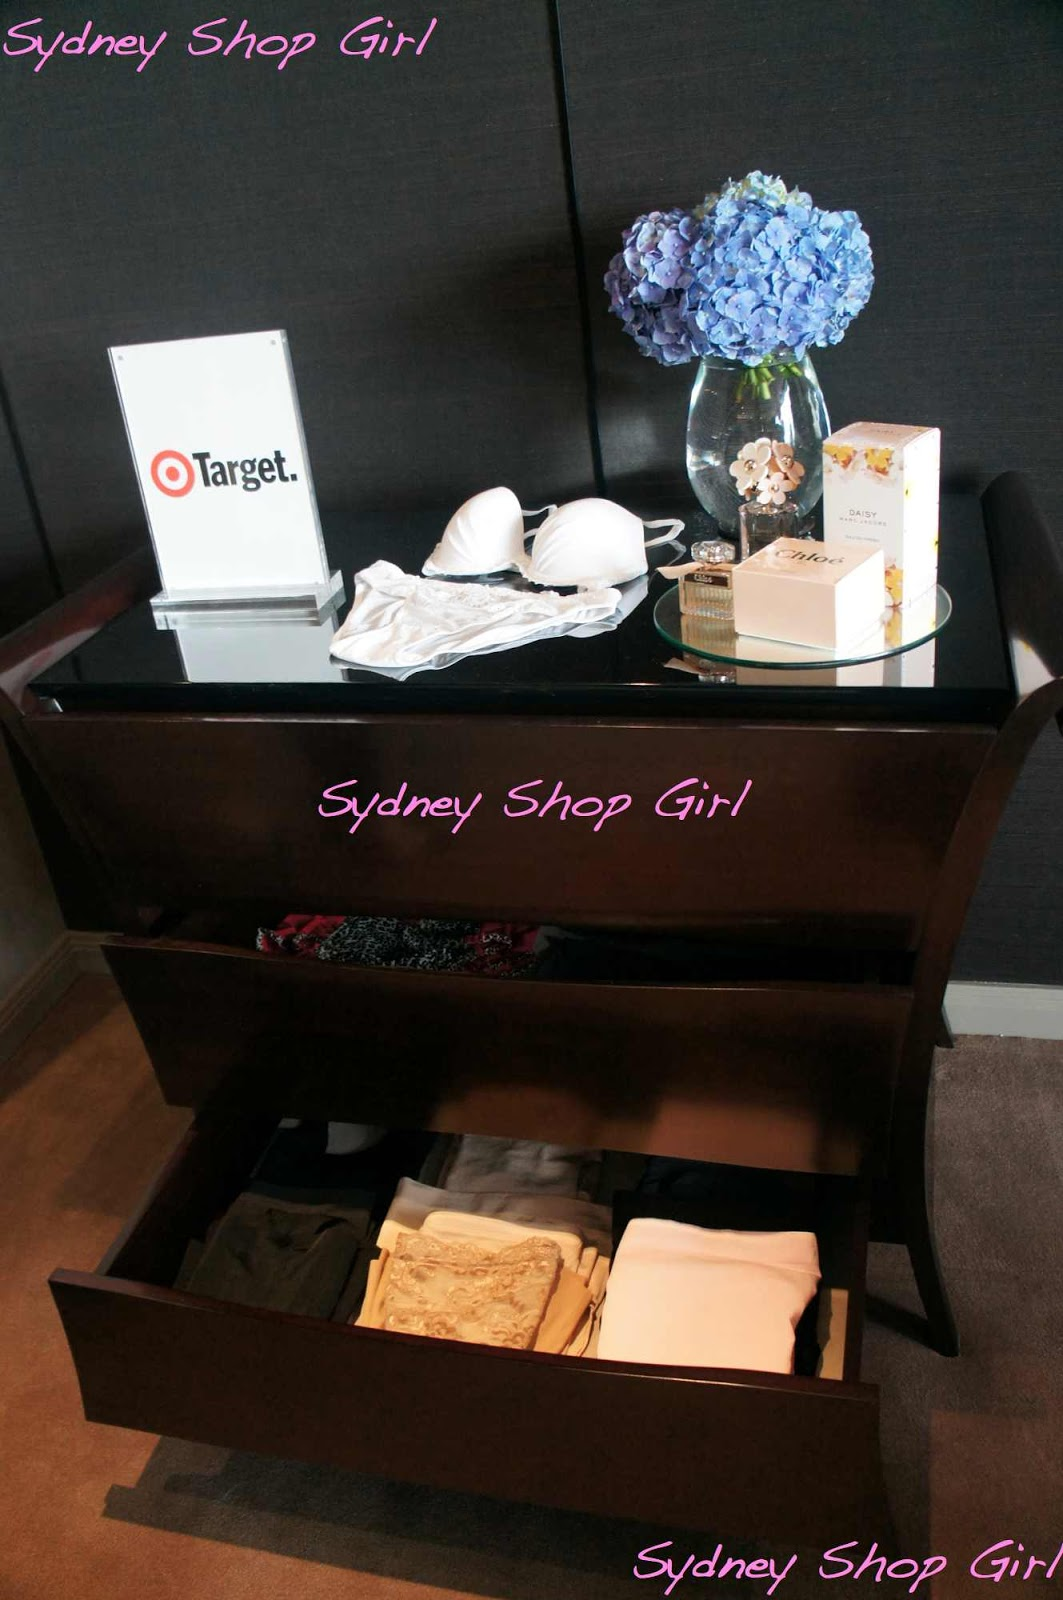 Gamma Klantenkaart Sydney Shop Girl Target 39s Gifts And Intimates Launch 2012